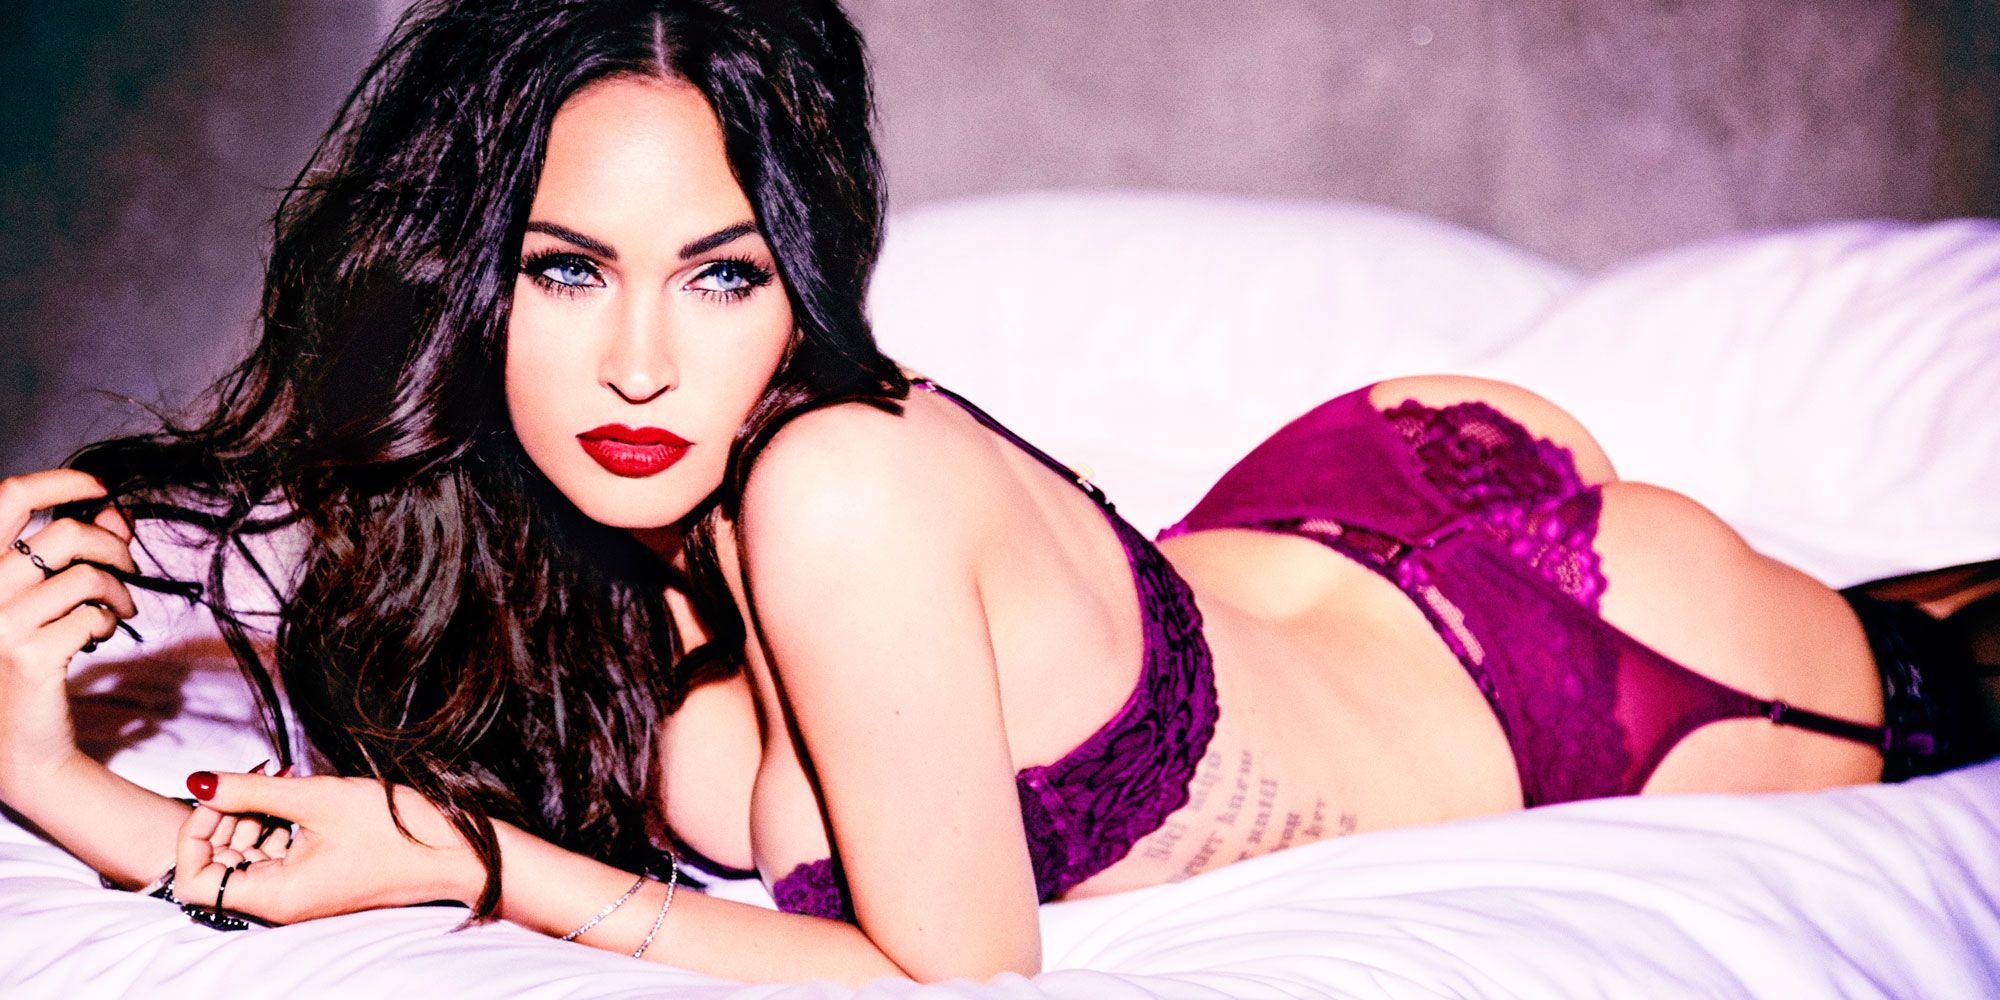 Megan Fox s Frederick s of Hollywood Line - Megan Fox Lingerie Interview d28cbbe61